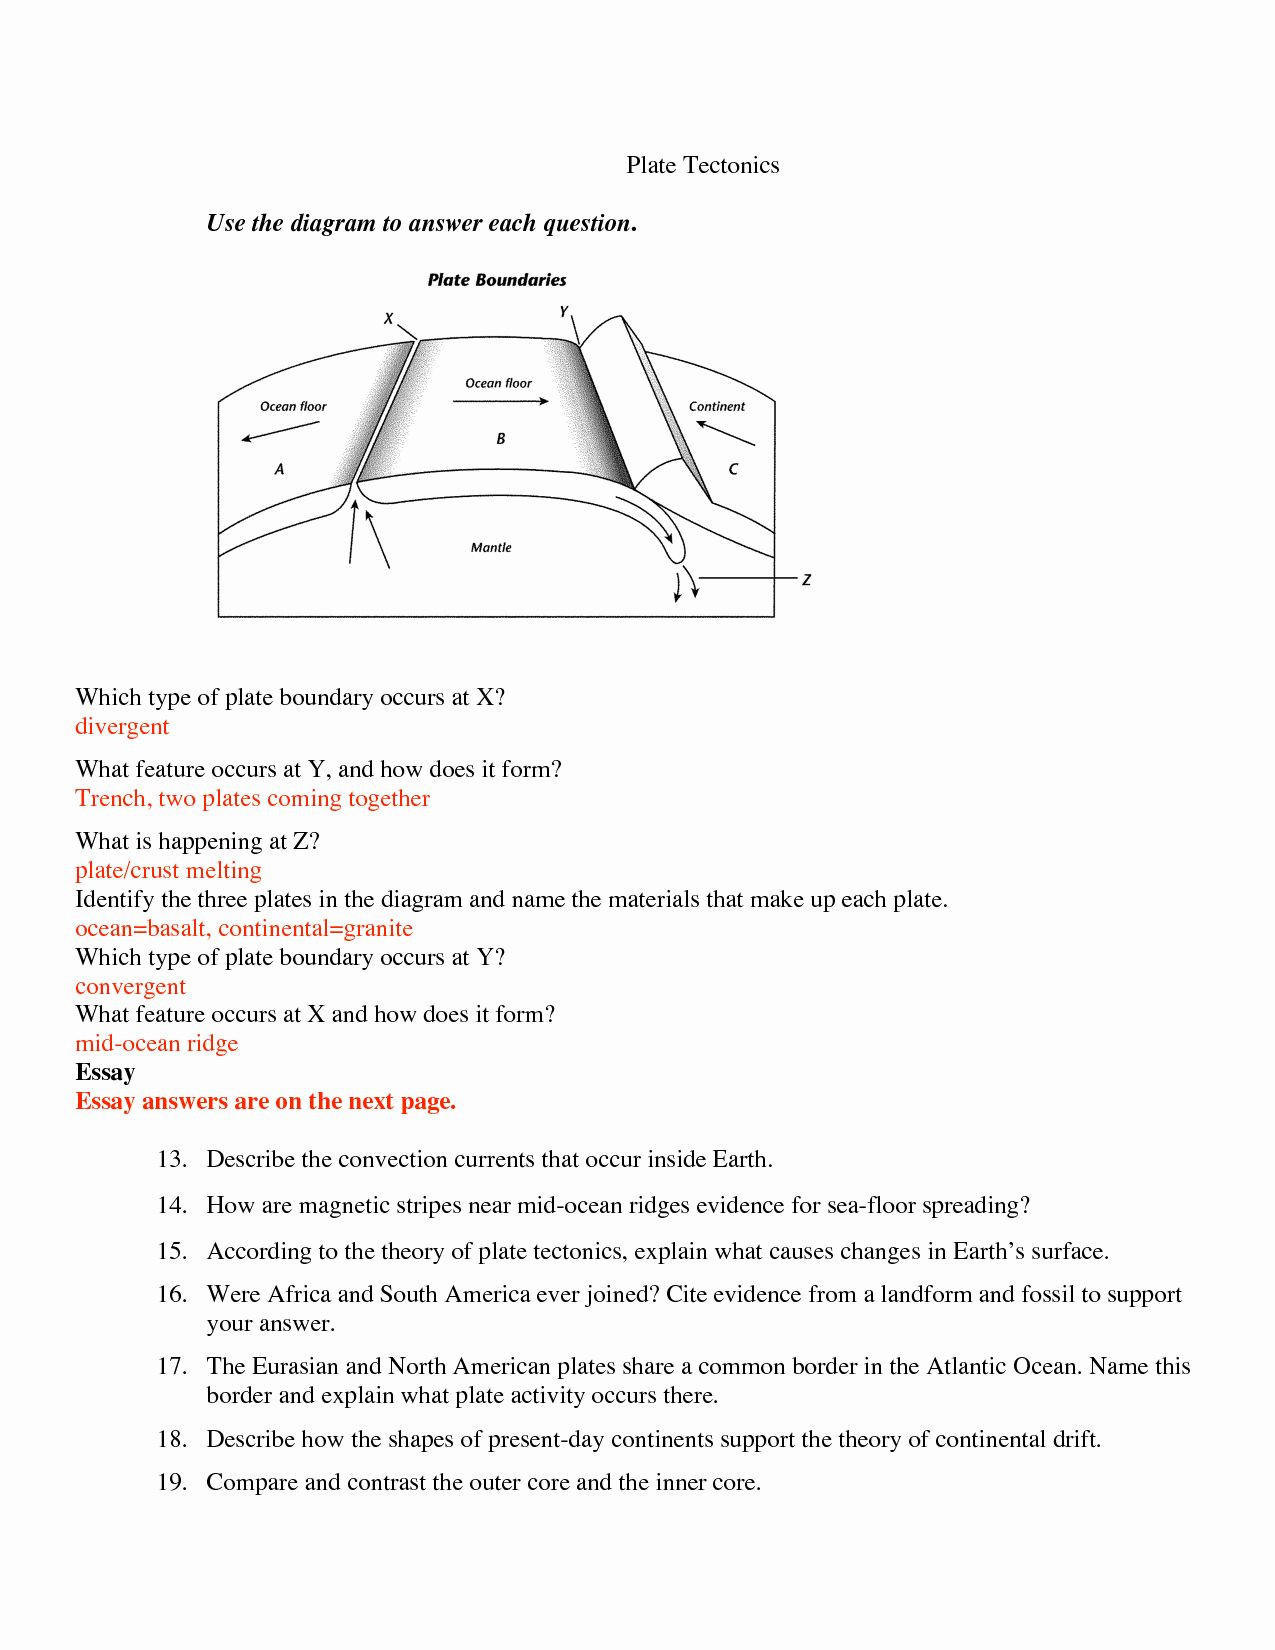 Plate Tectonic Worksheet Answers 50 Plate Tectonics Worksheet Answers In 2020